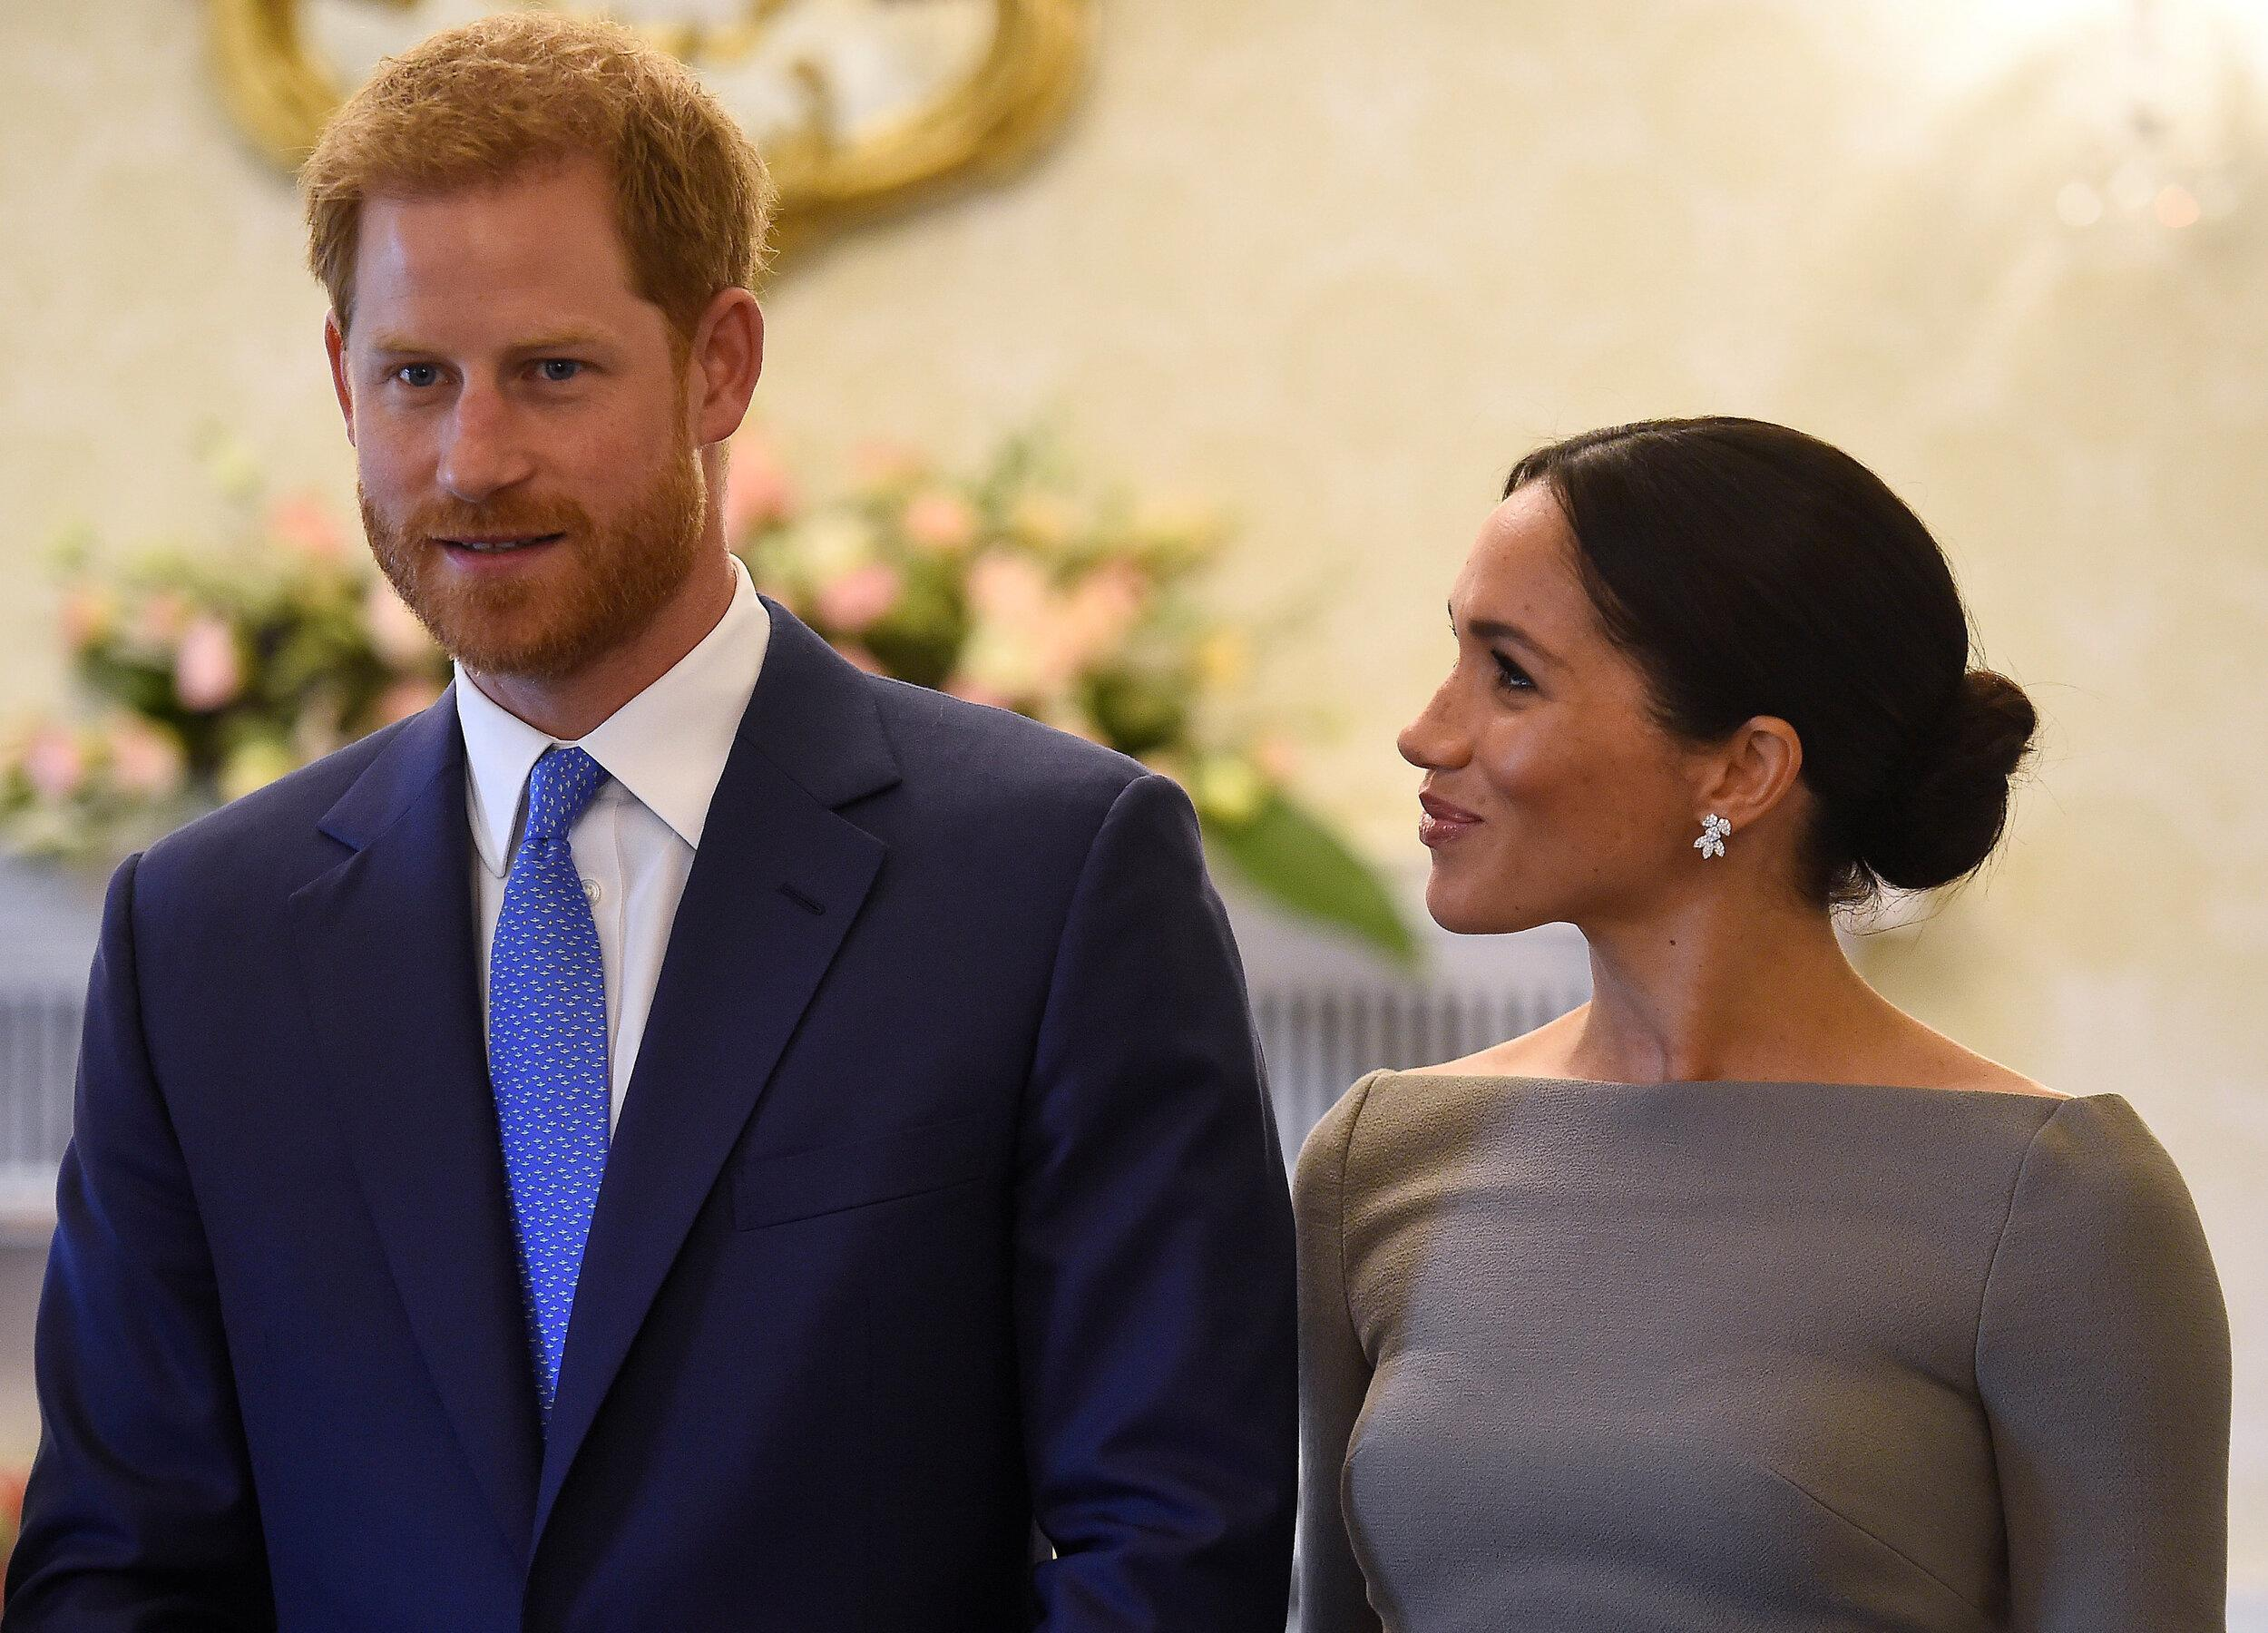 The Duke and Duchess of Sussex at Aras an Uachtarain on the second day of their visit to Dublin, Ireland.